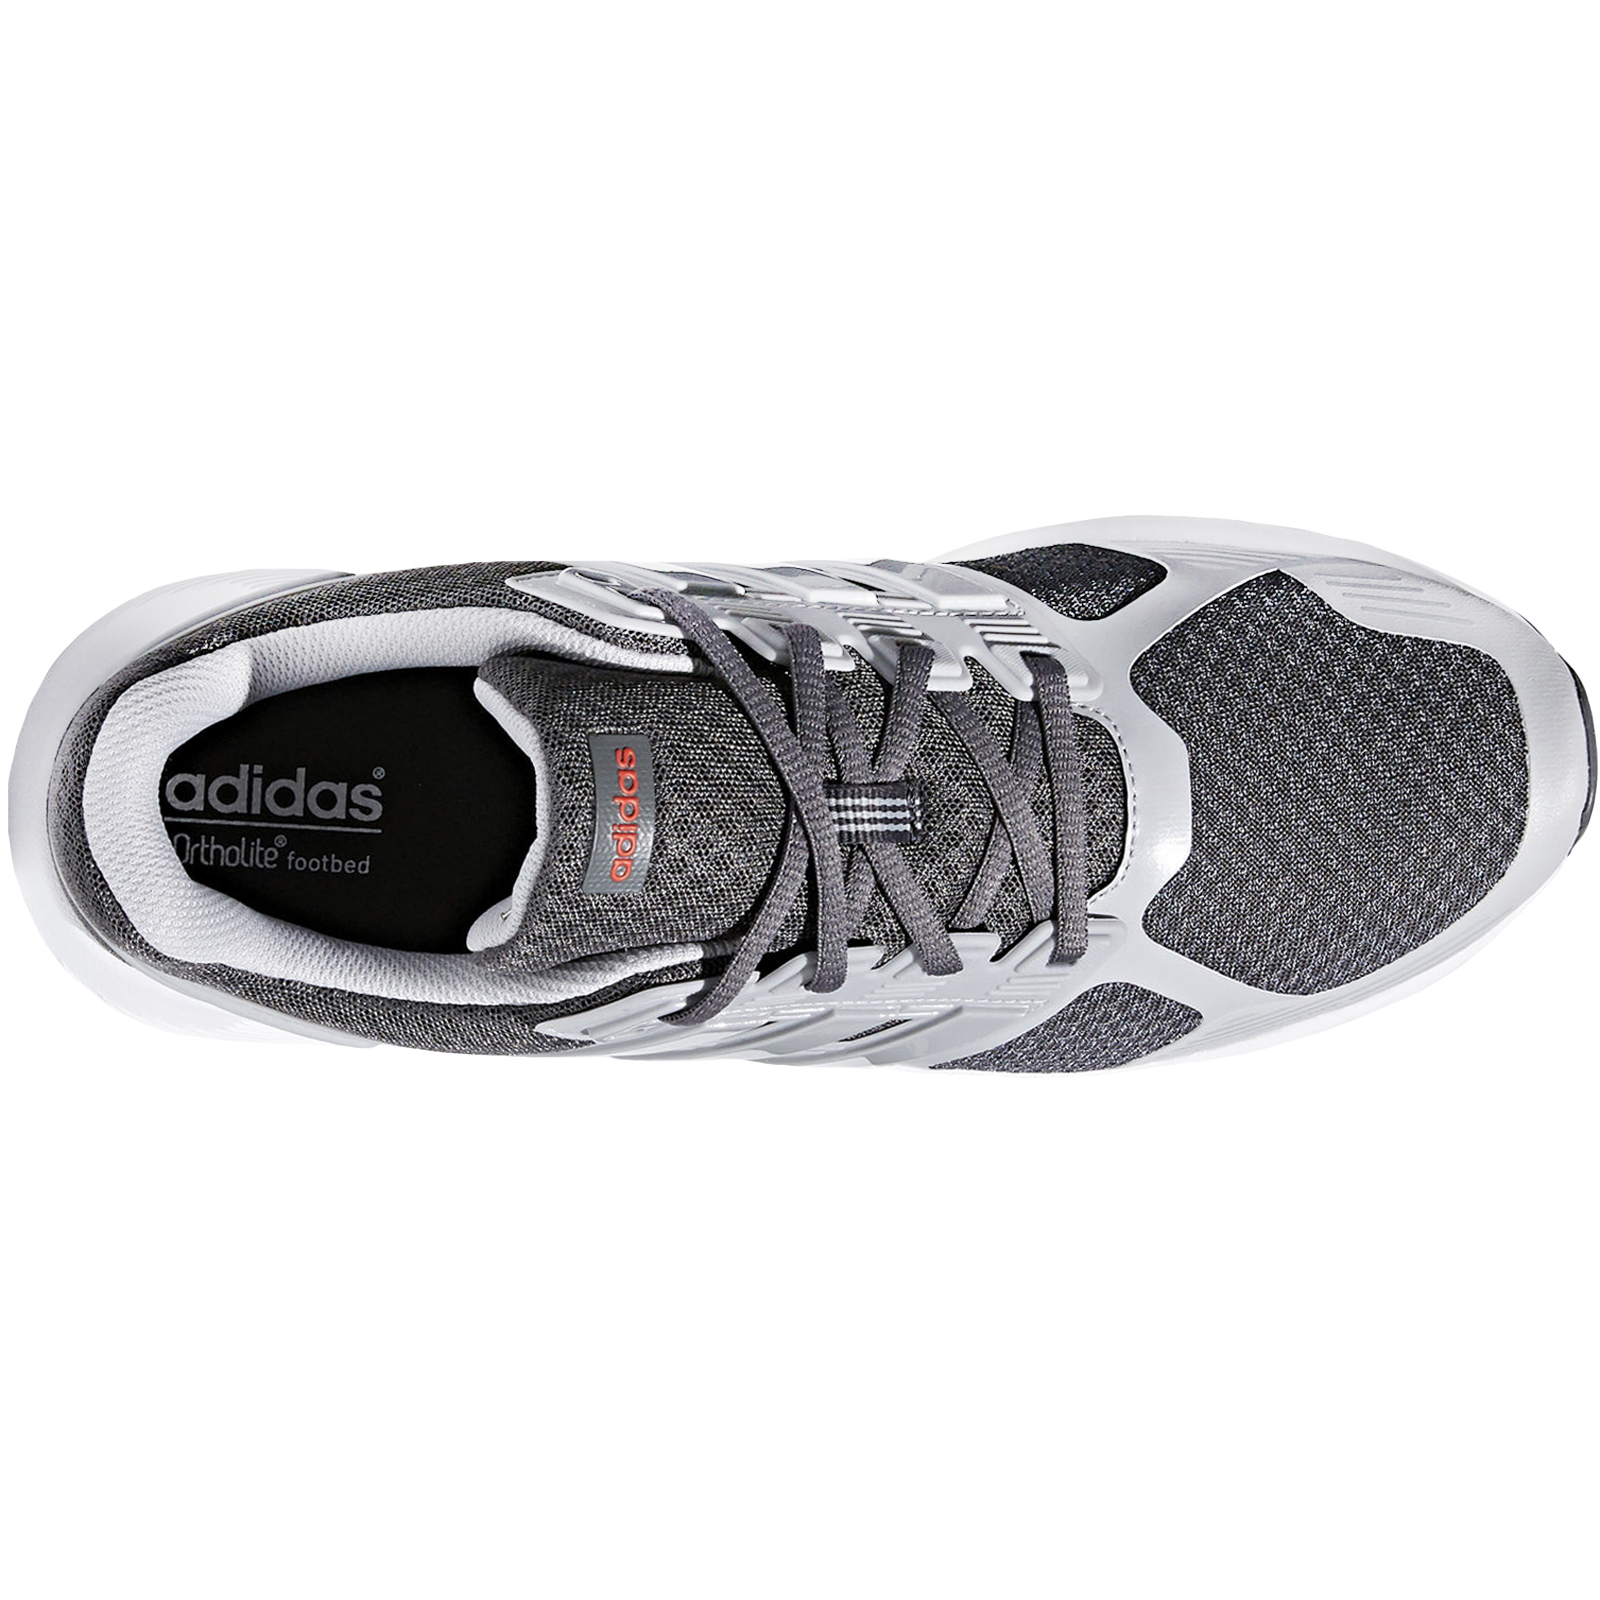 adidas-Performance-Mens-Duramo-8-Lace-Up-Sports-Training-Running-Trainers-Shoes miniatura 8